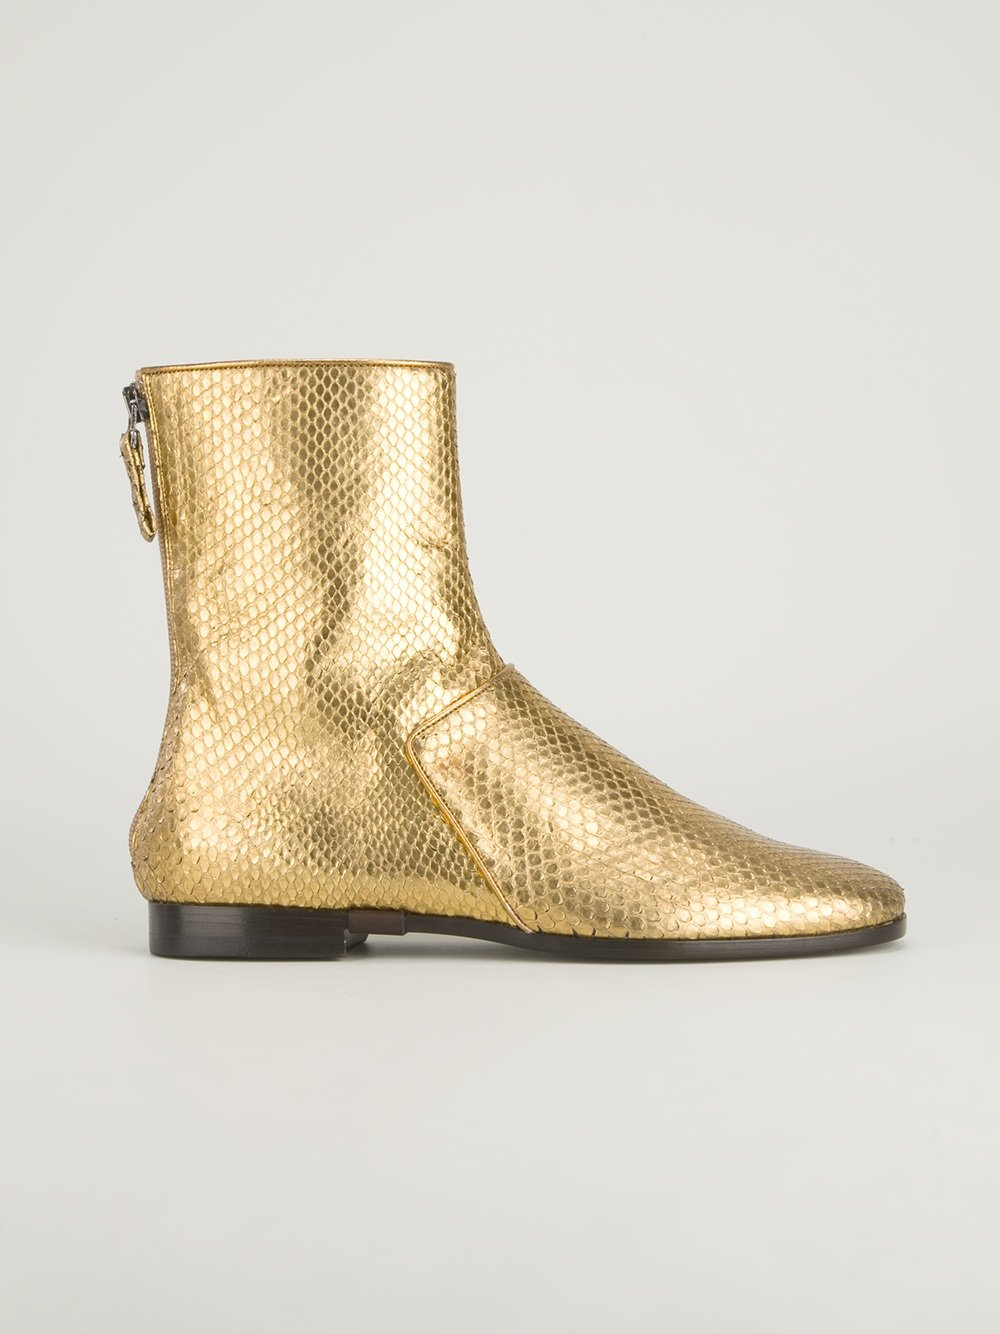 Metallic Leather Boots : Lyst carritz metallic leather ankle boots in